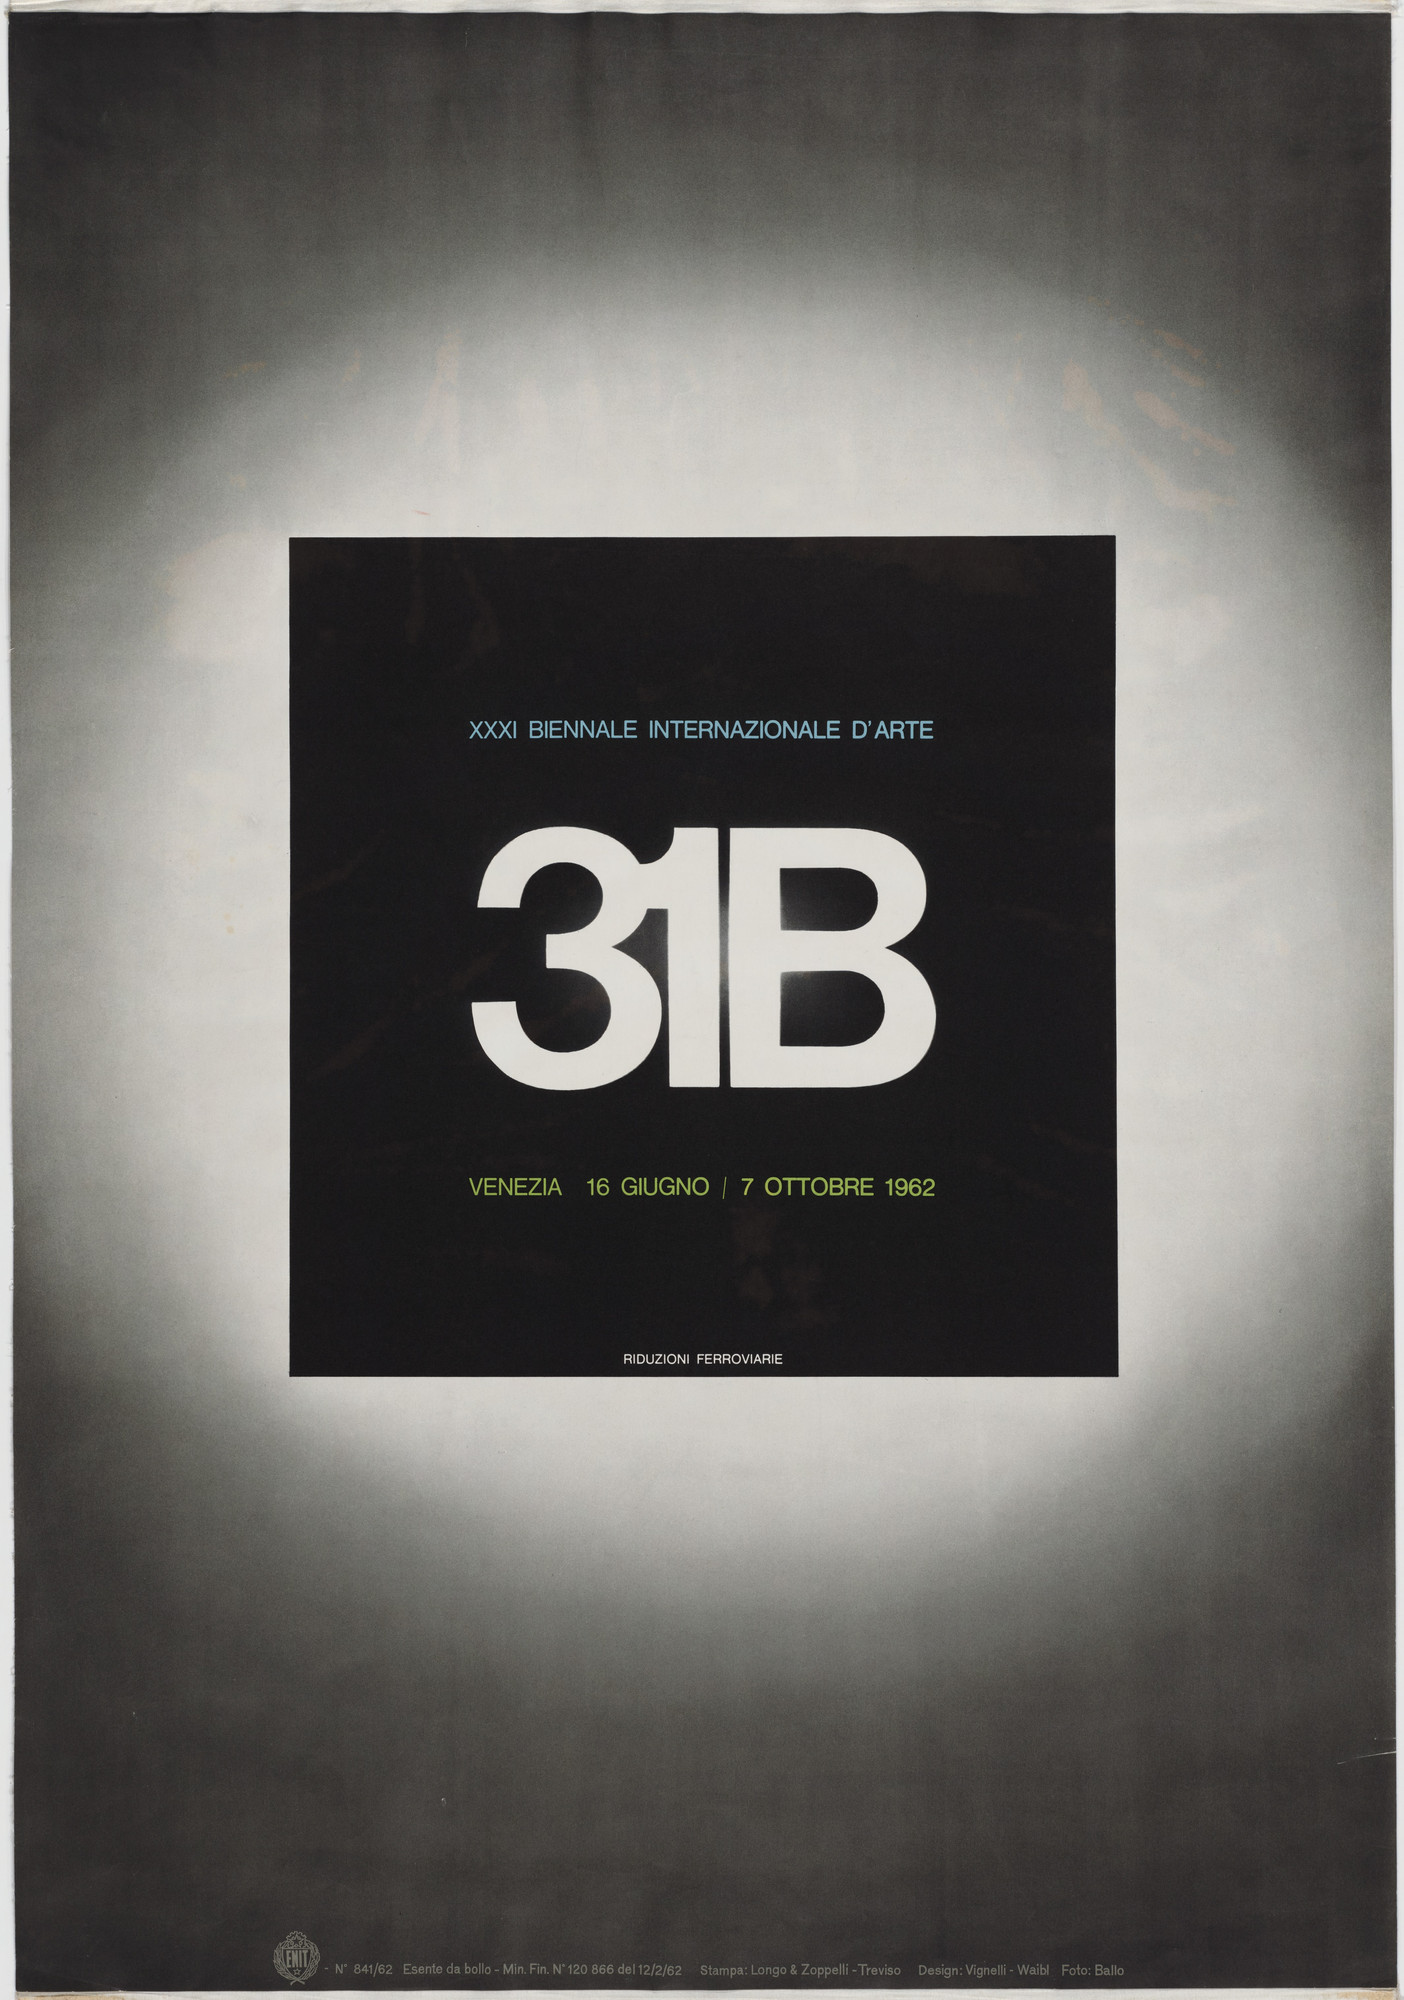 Lella Vignelli, Massimo Vignelli, Guido Ballo. 31st International Biennale of Art. 1962